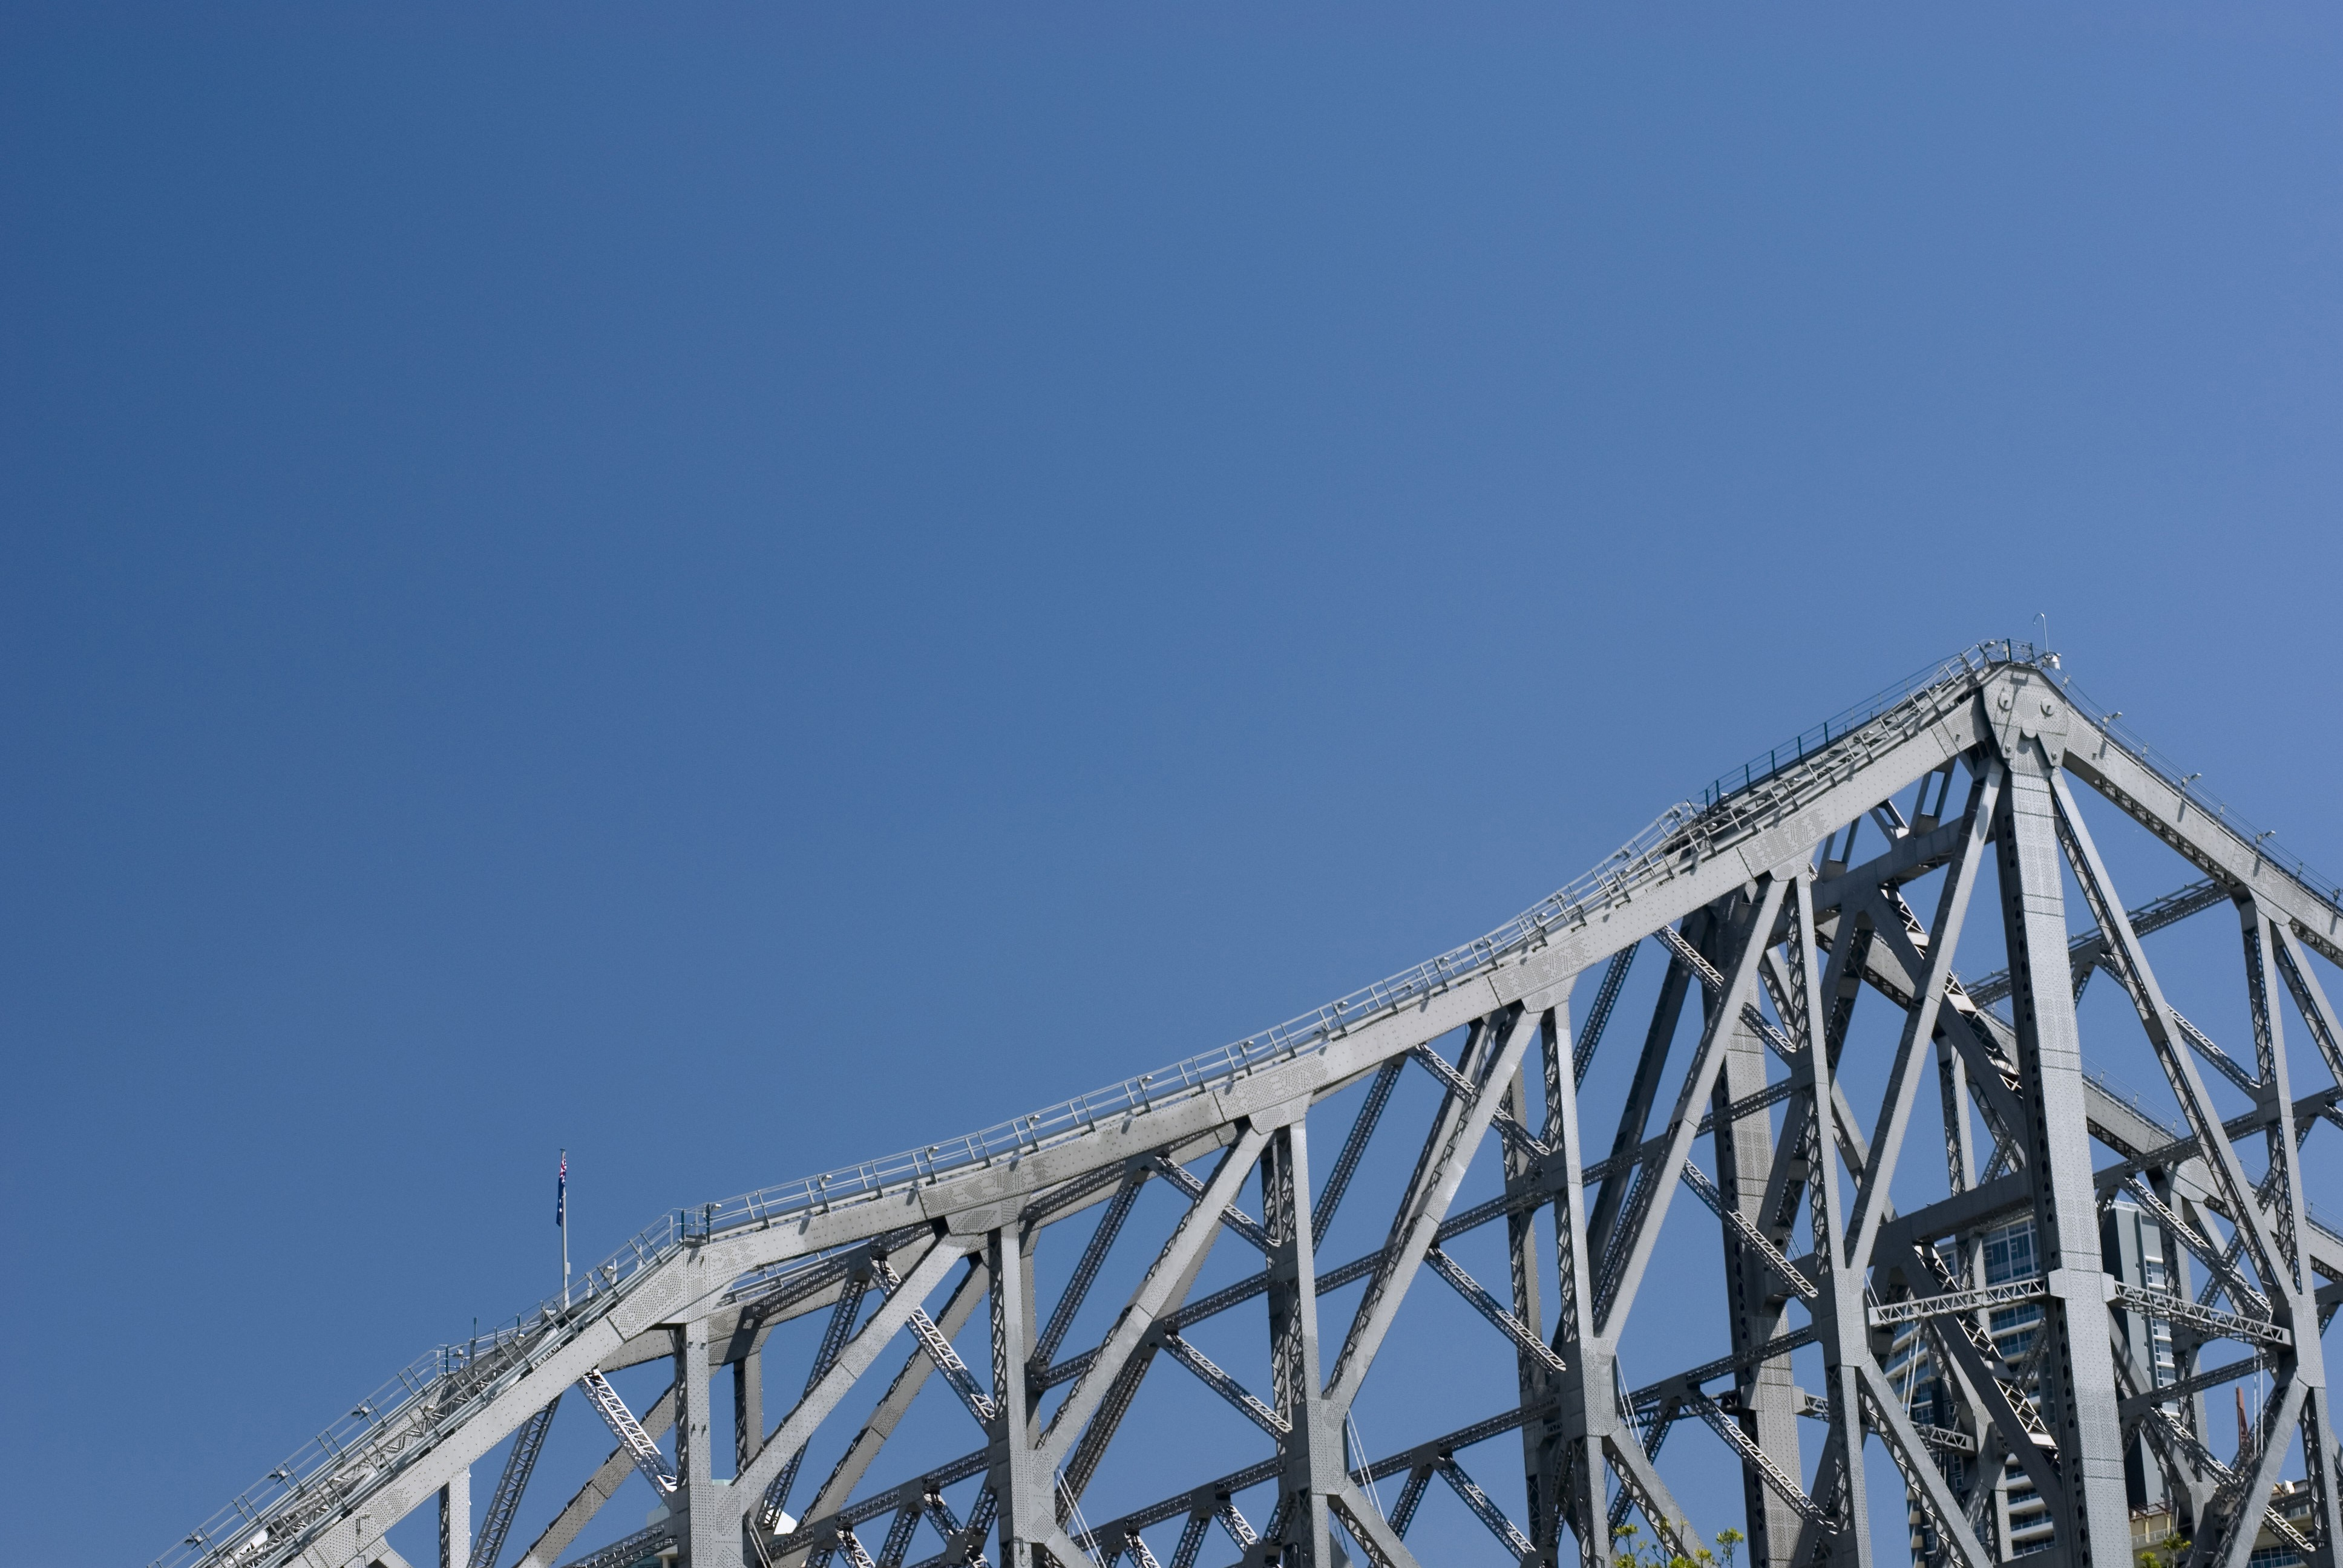 the superstructure of a large metal road bridge, story bridge, brisbane, australia